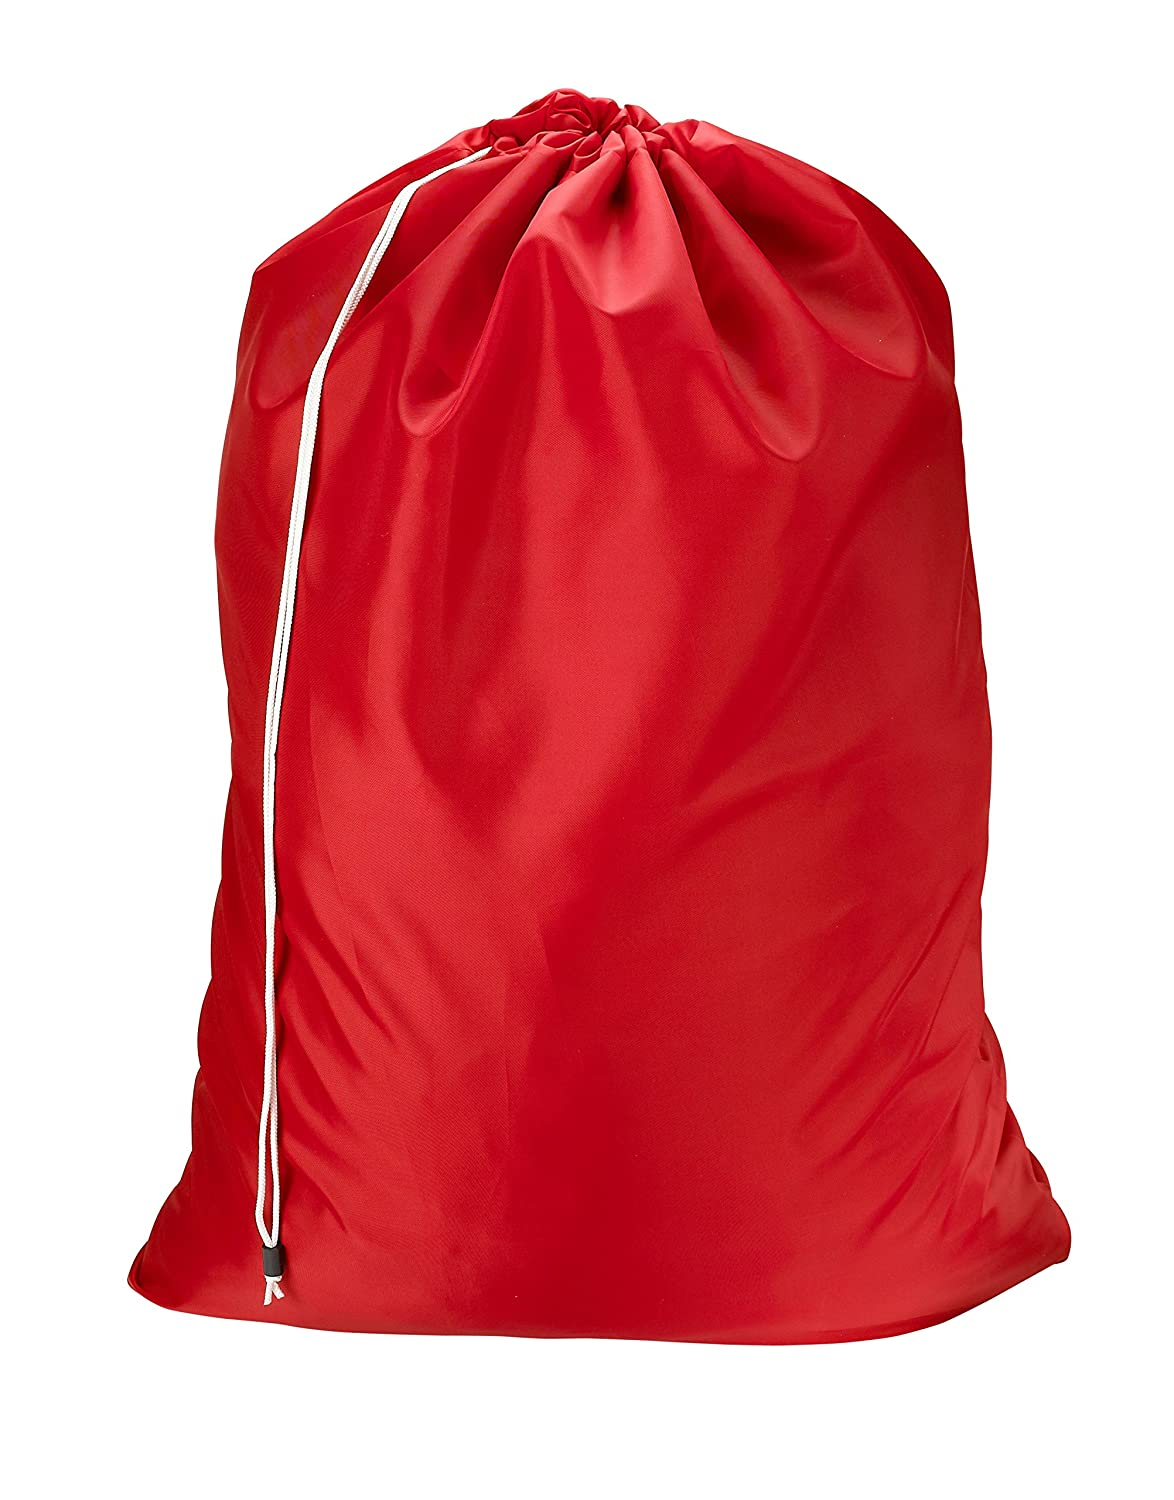 beacf71561344 Nylon Laundry Bag - Locking Drawstring Closure and Machine Washable. These  Large Bags will Fit a Laundry Basket or Hamper and Strong Enough to Carry  up to ...